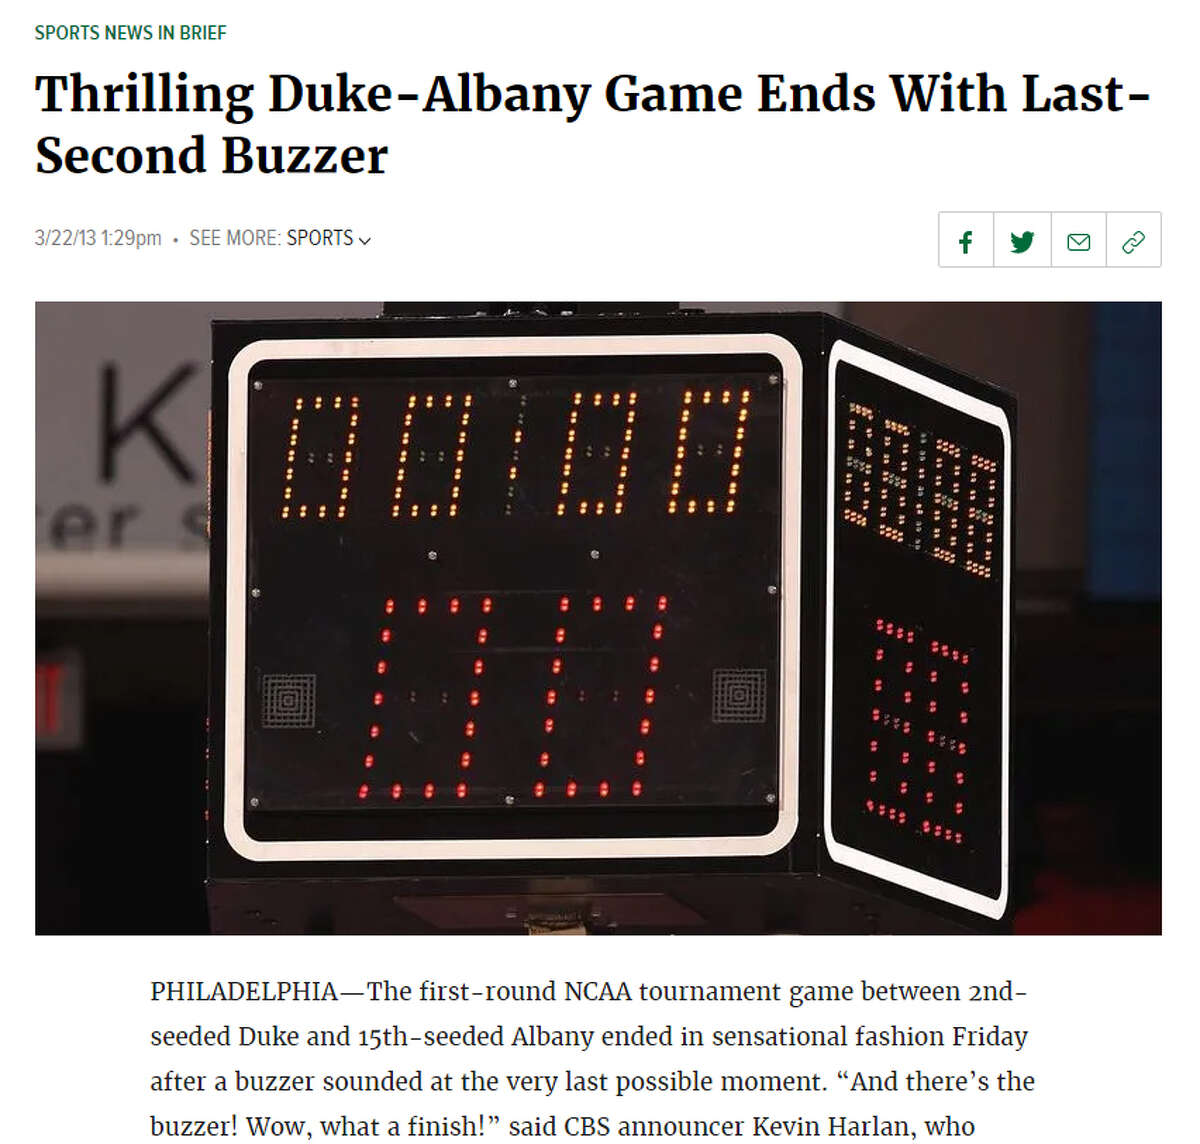 Story: Thrilling Duke-Albany Game Ends With Last-Second Buzzer Excerpt: